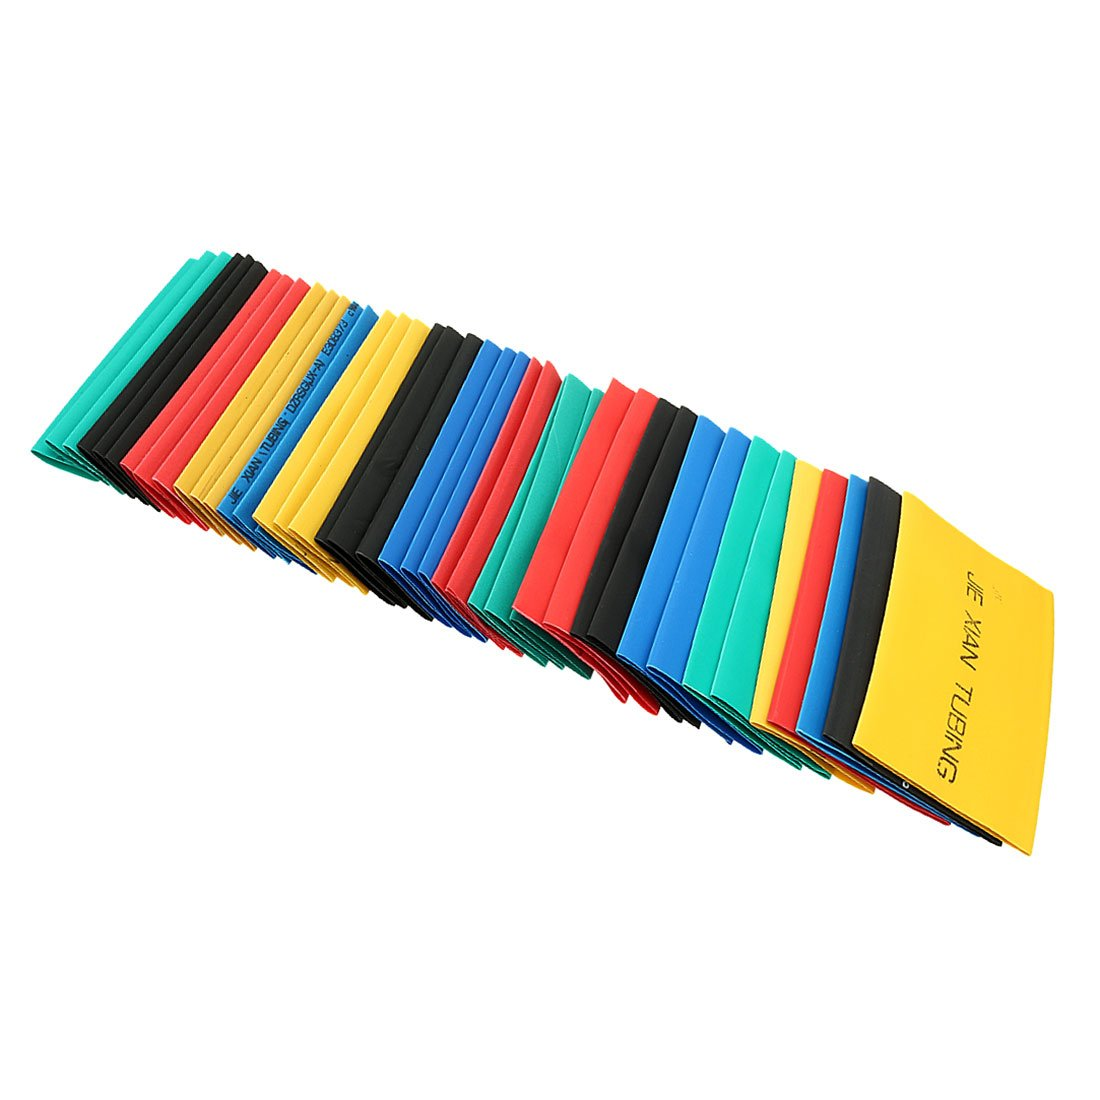 uxcell 410Pcs 2:1 Heat Shrink Tubing Tube Sleeving Wire Cable 5 Color 10 Sizes by uxcell (Image #4)